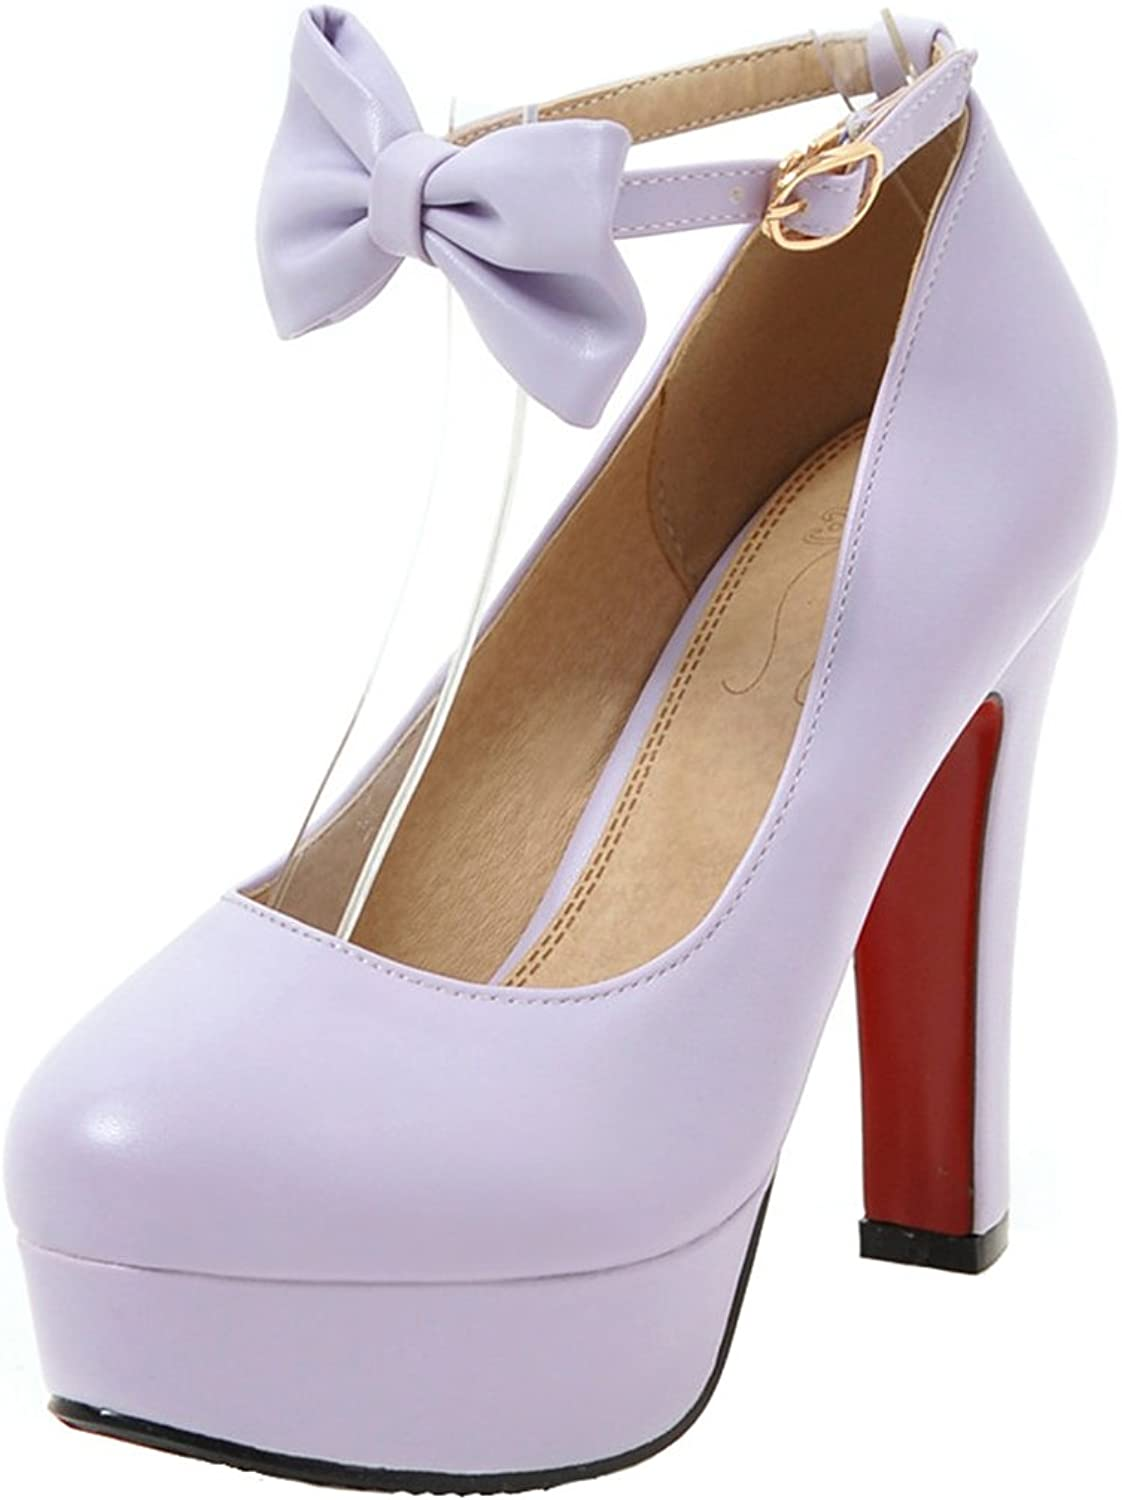 AIYOUMEI Women's Block High Heel Platform Ankle Strap Pumps shoes with Bows